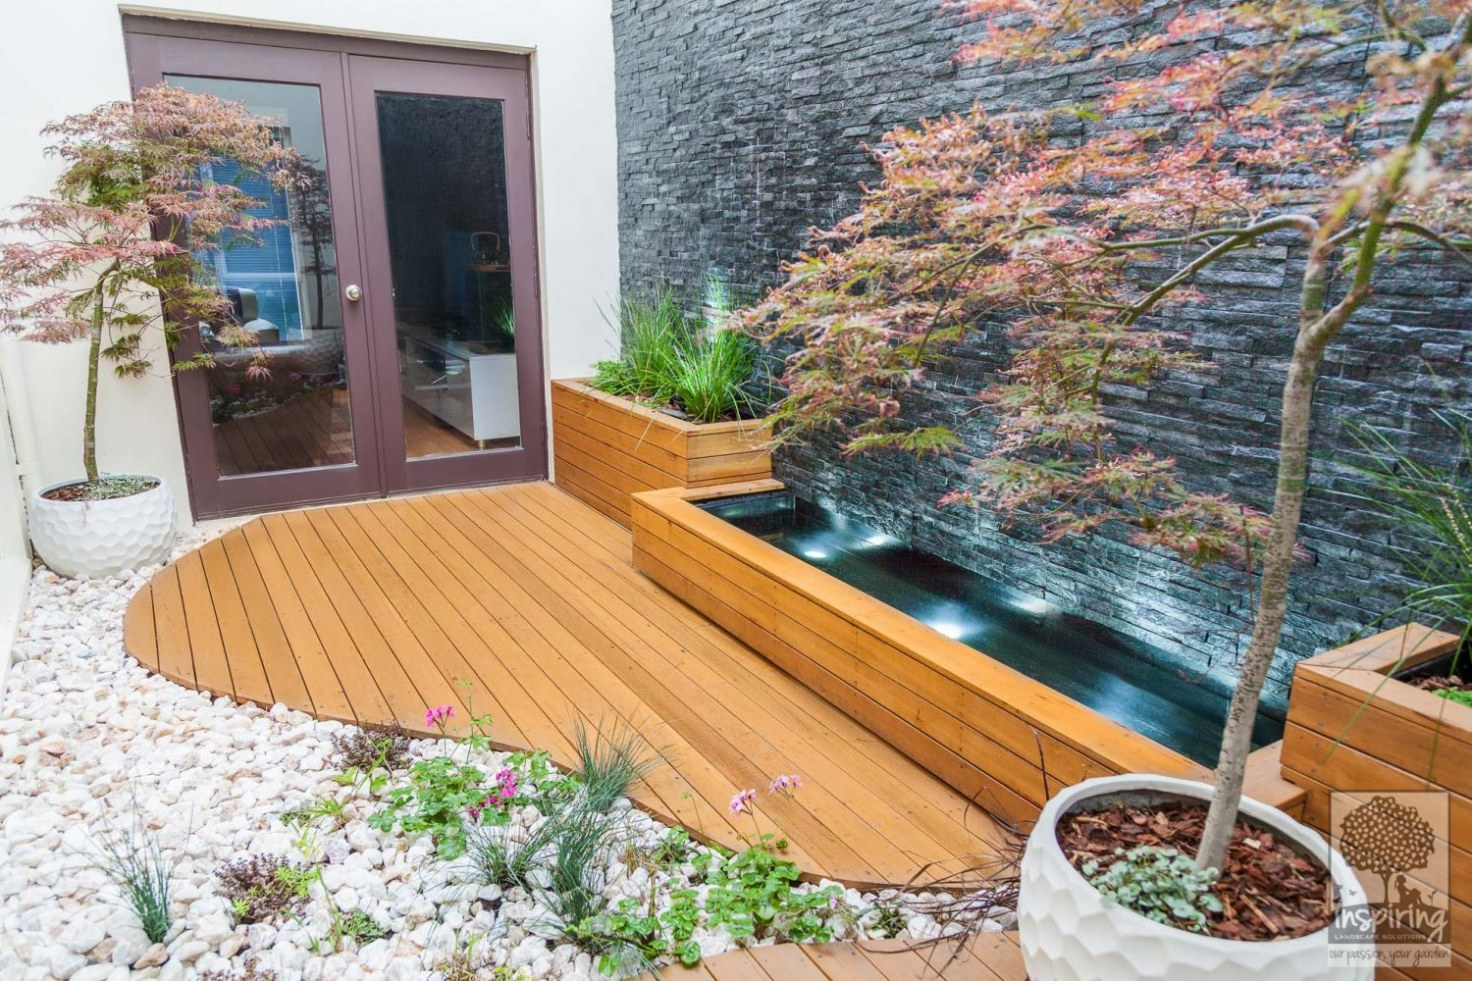 Custom deck shaped like a river bed joining a wall to wall cascading water feature in Maribyrnong landscape design